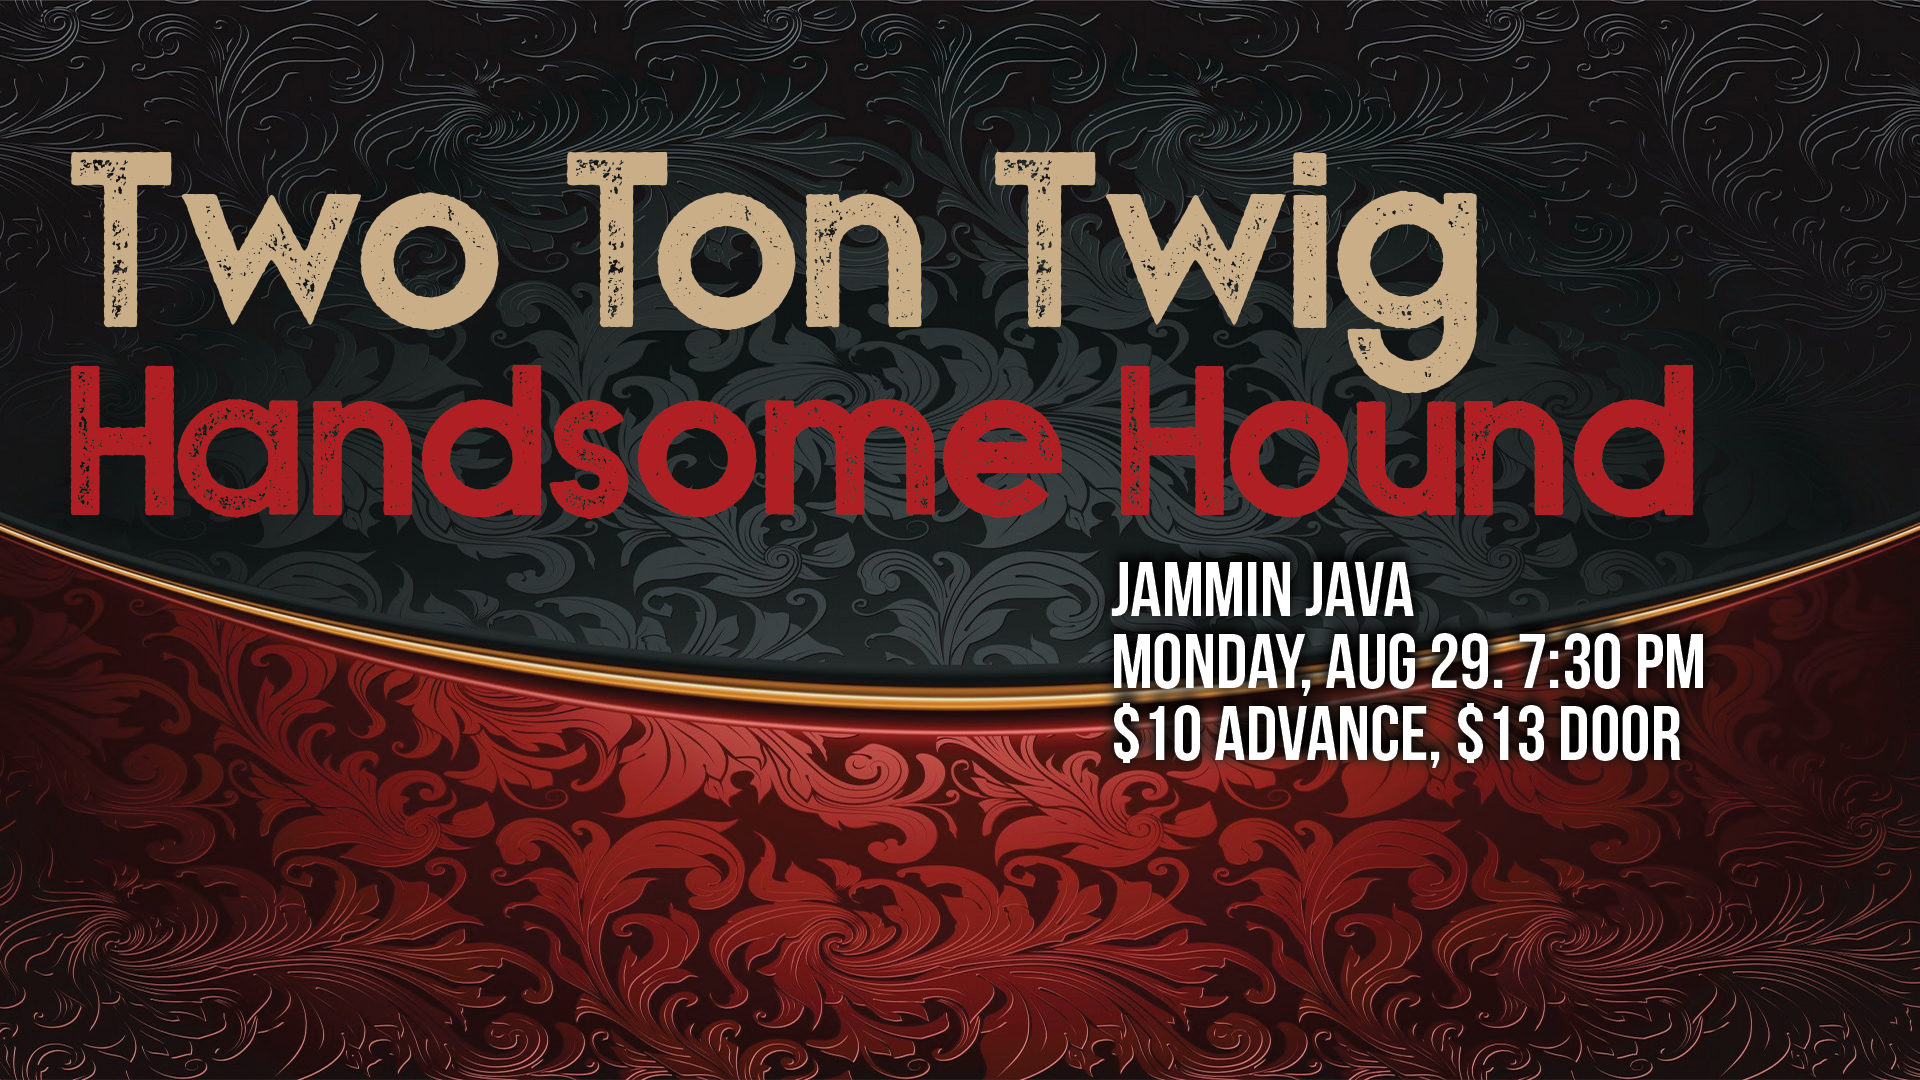 twig fb event template-jammin java 8-29.png